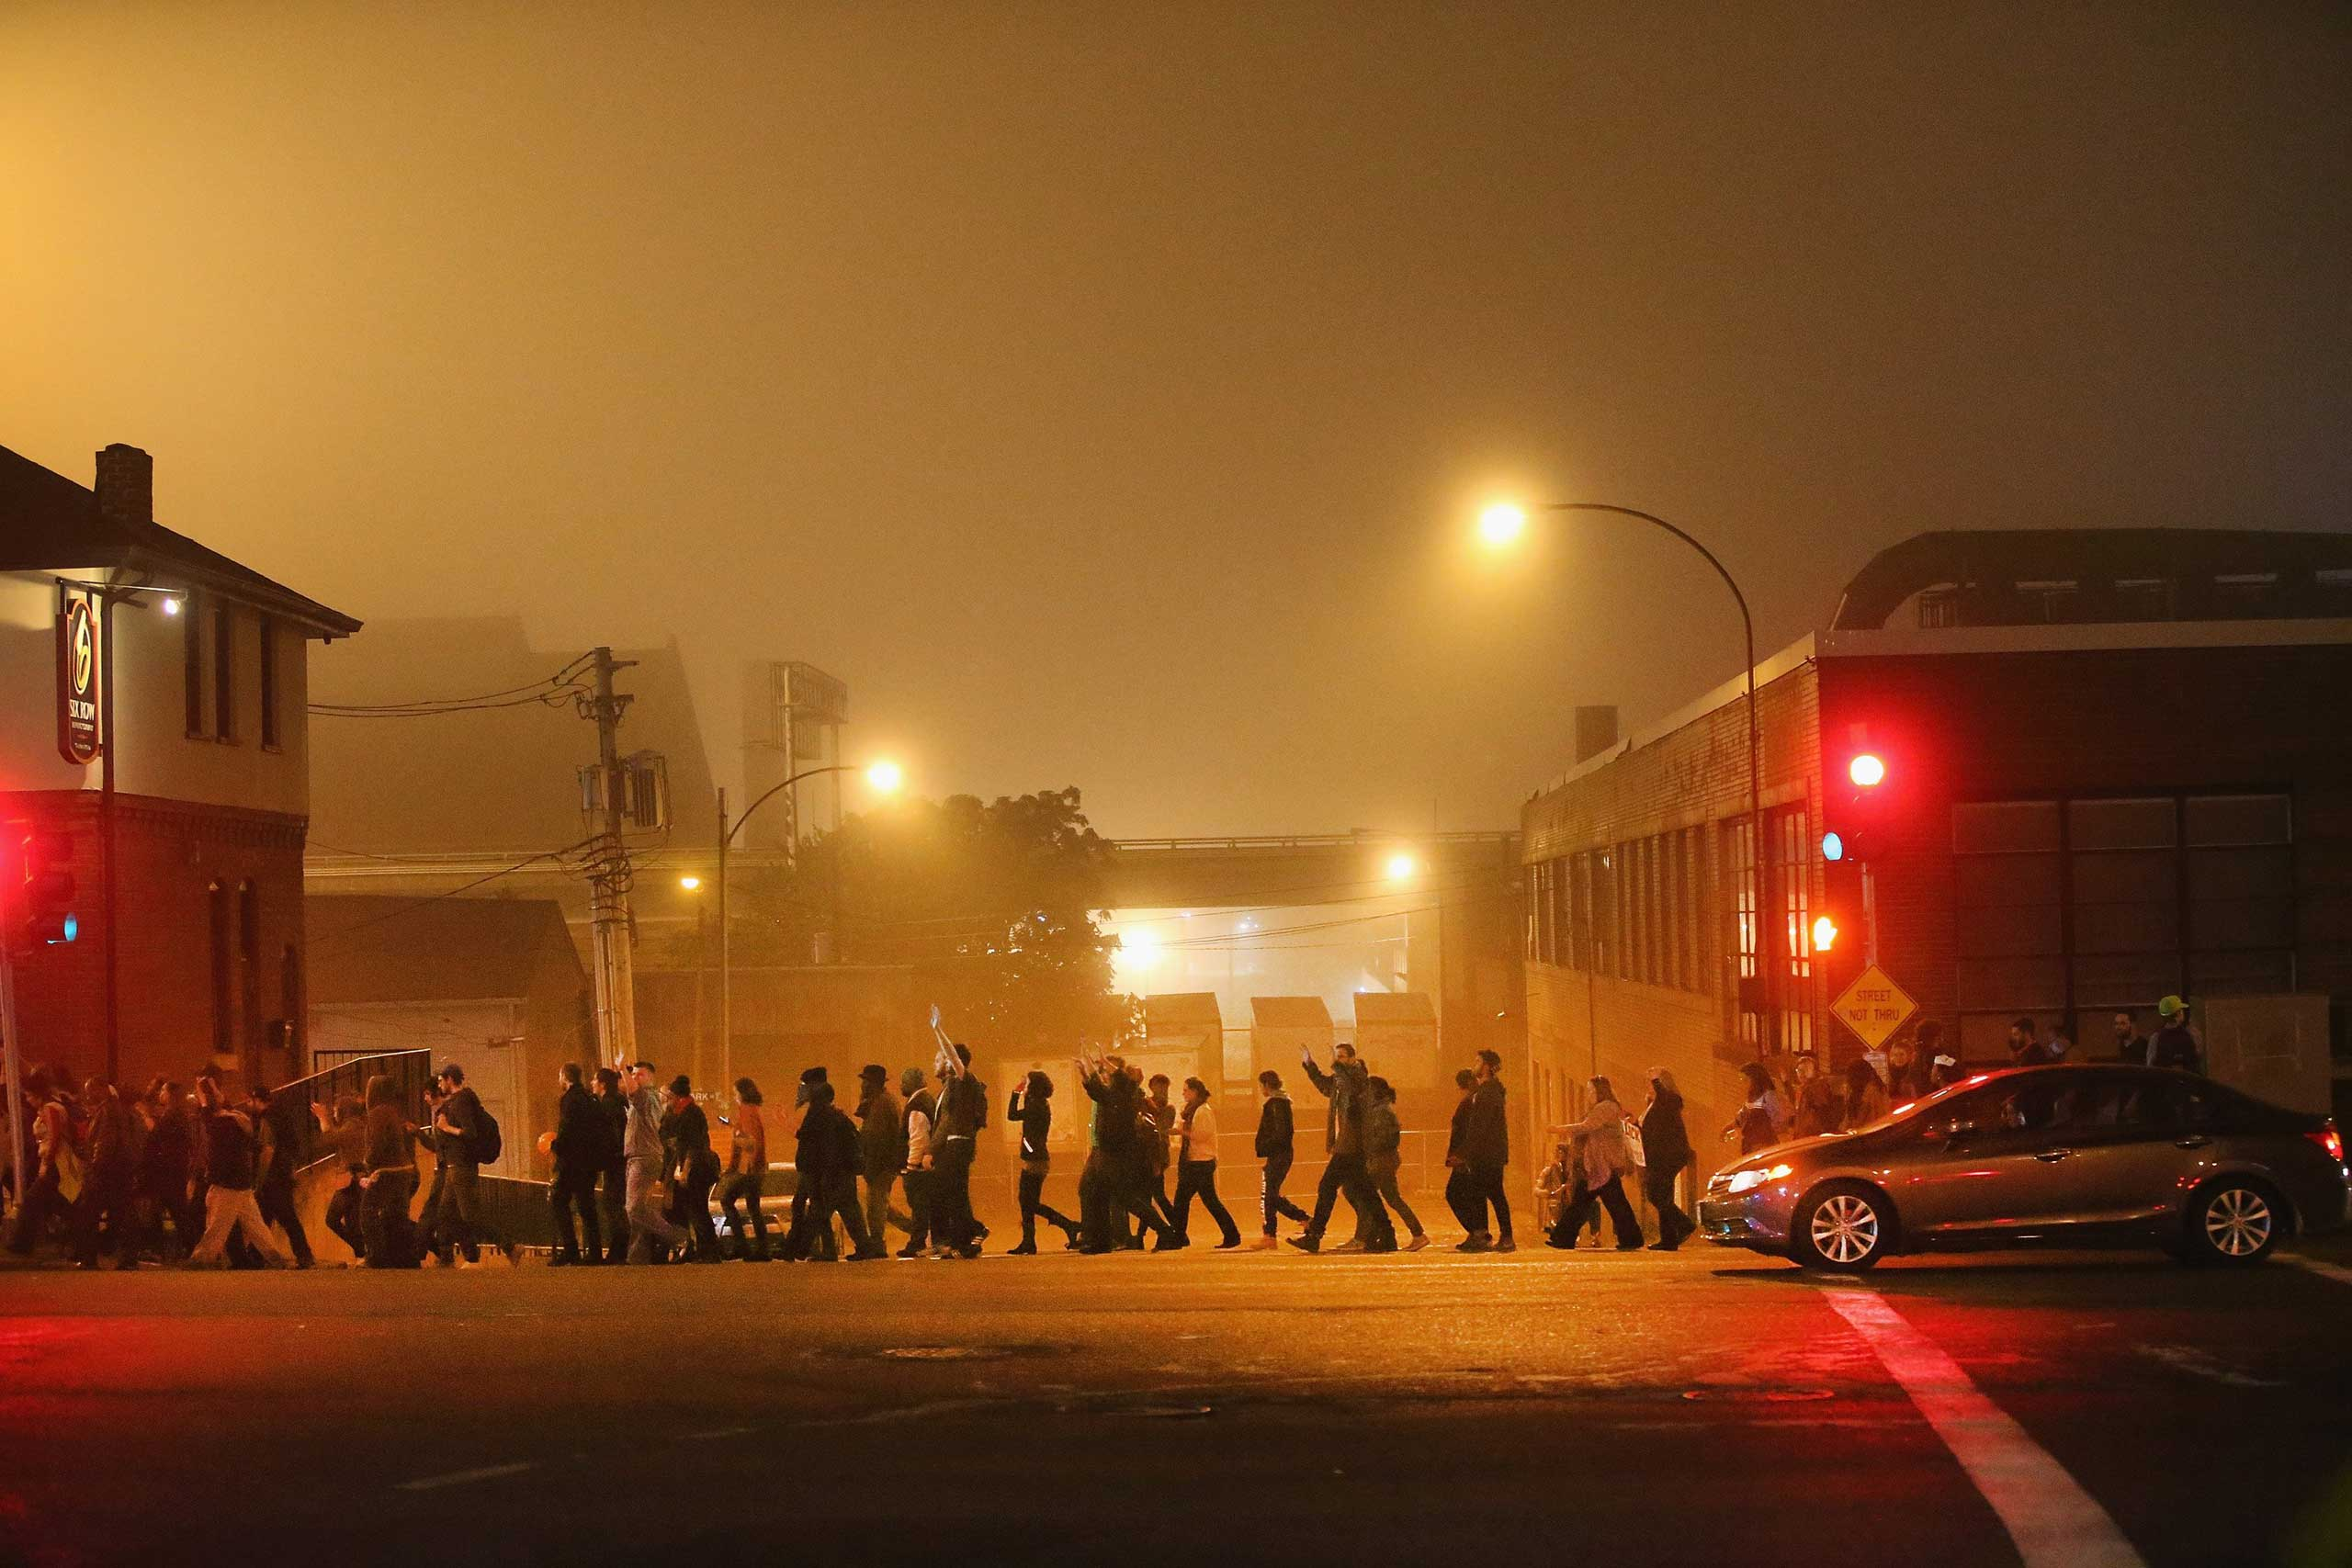 Demonstrators march through the streets  of St. Louis on Oct. 13, 2014.